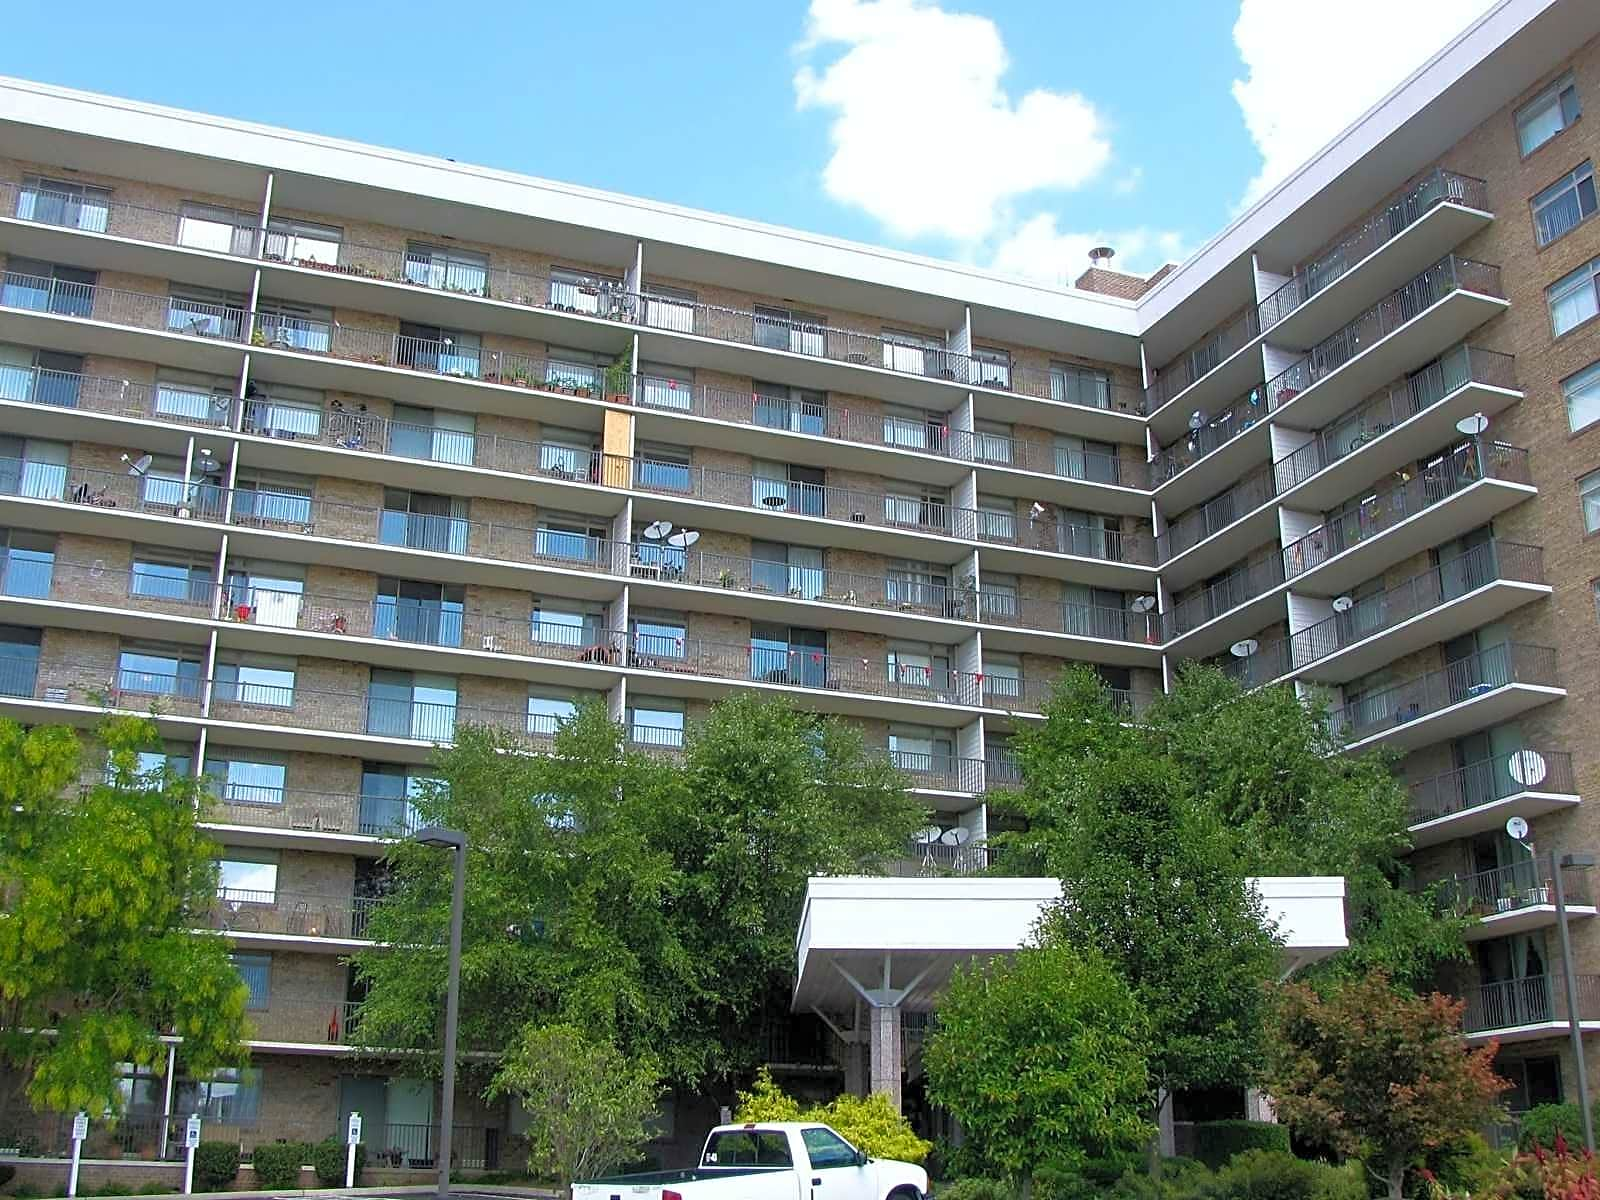 Wildwood towers apartments arlington va 22204 for Academie de cuisine bethesda md